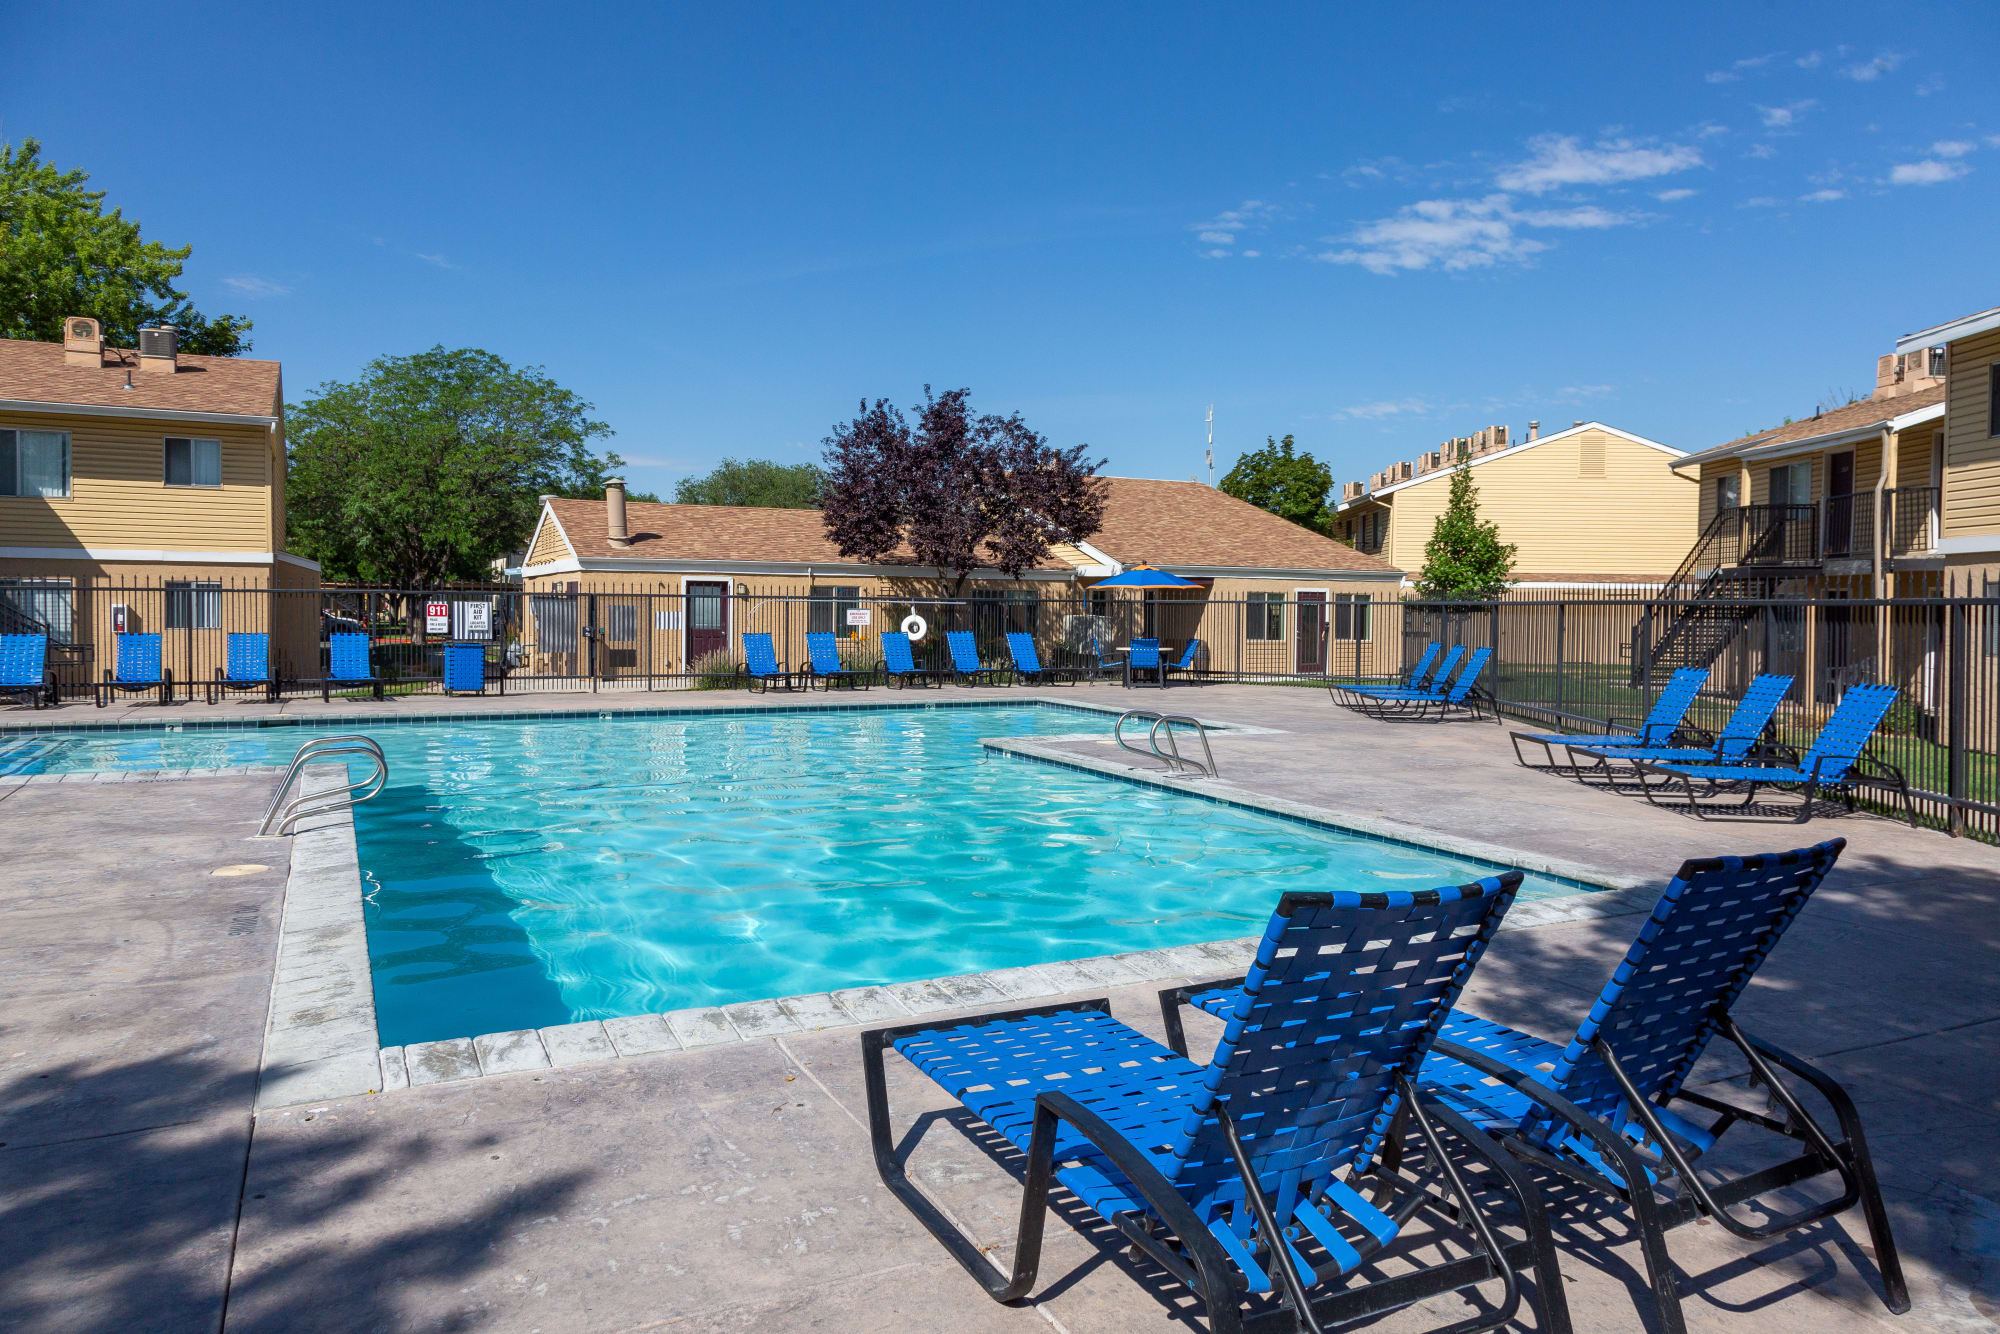 View of Callaway Apartments's pool with lounge chairs